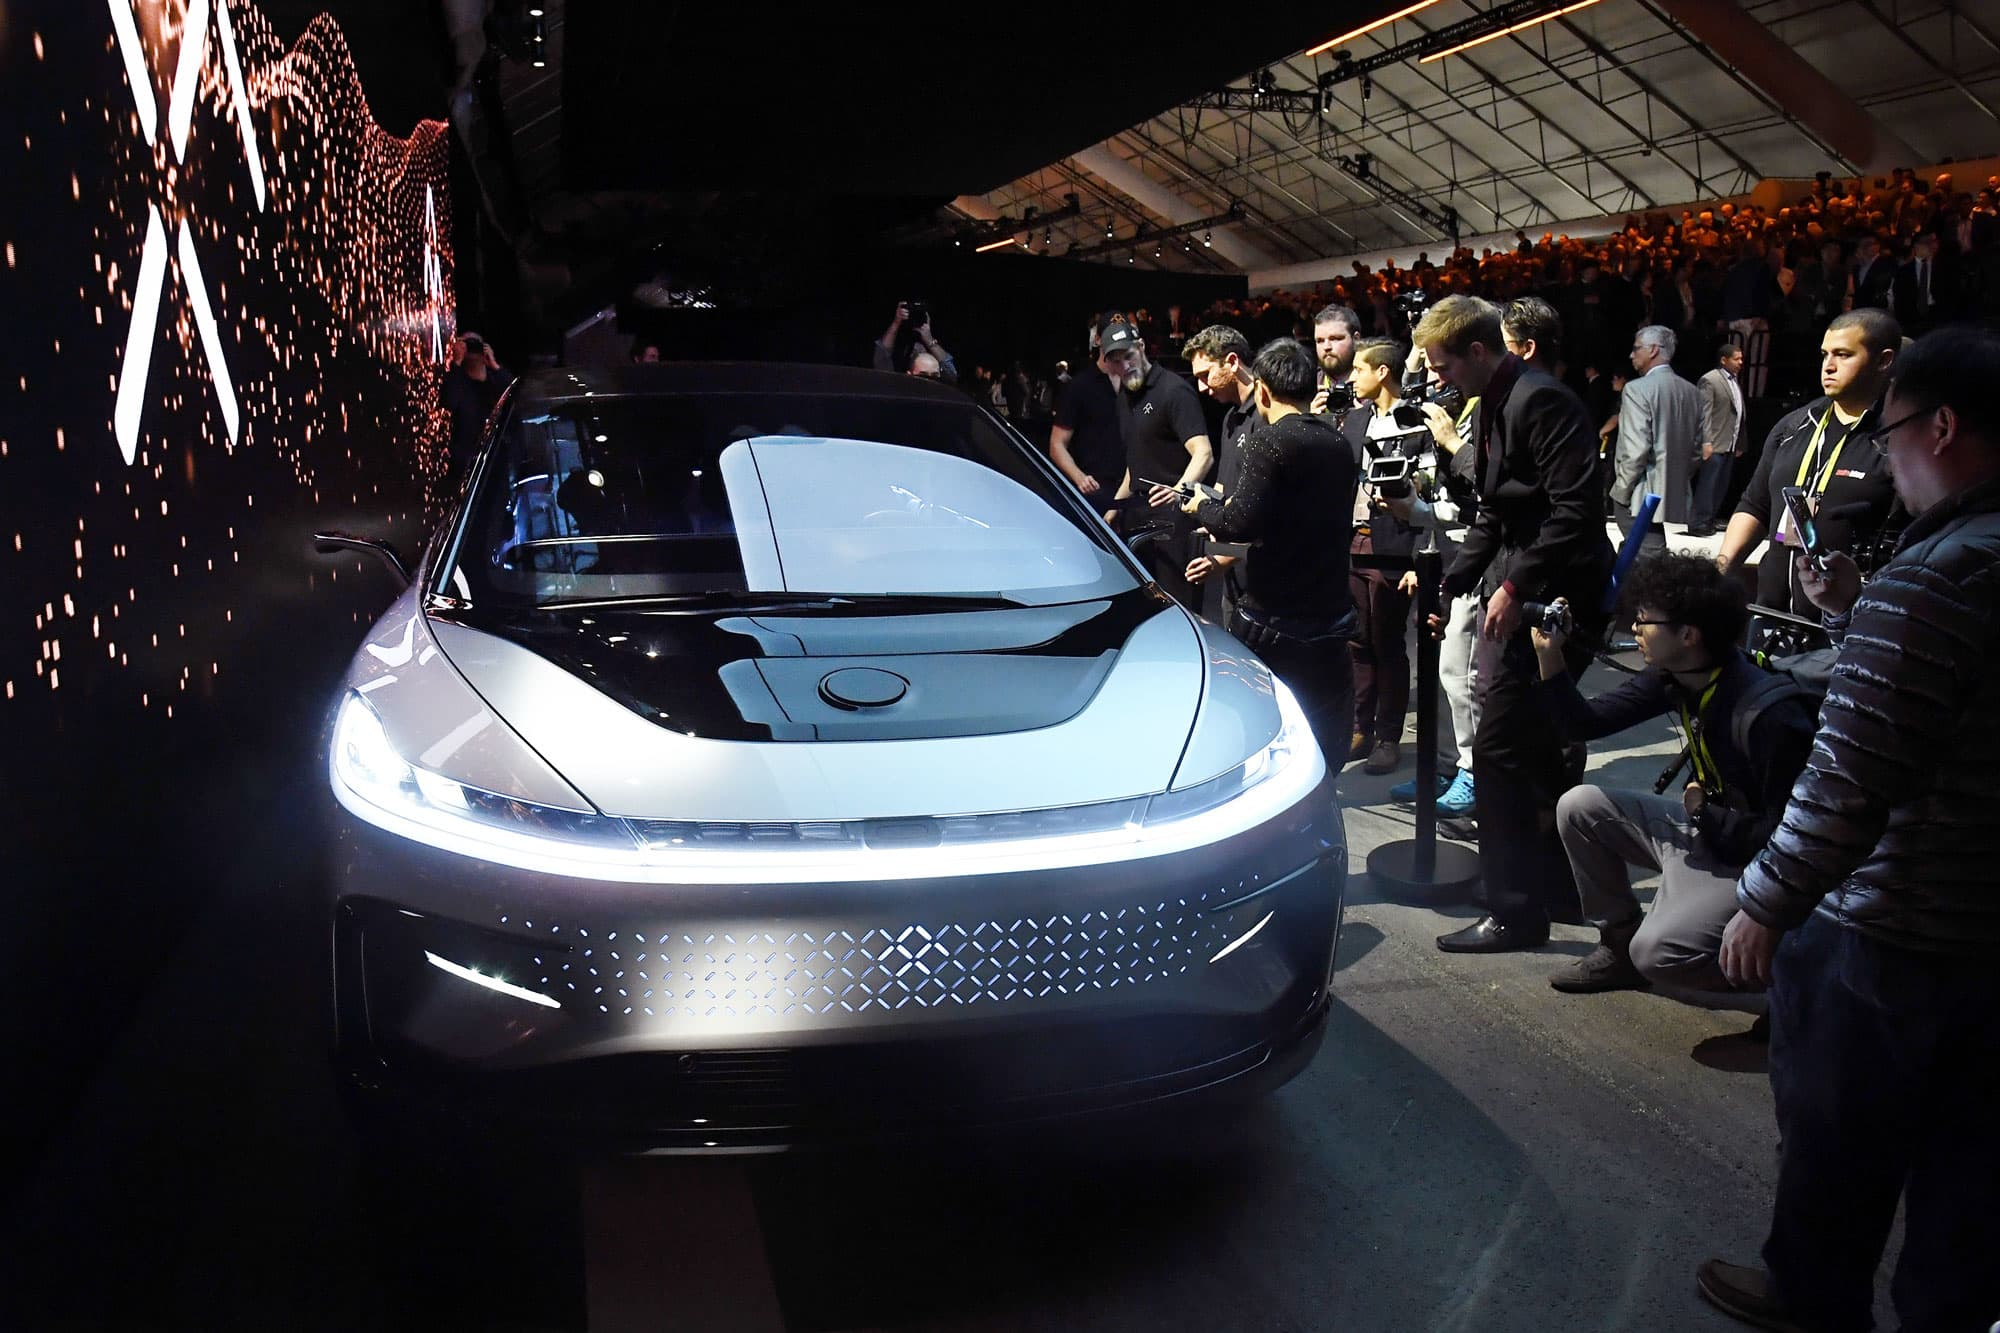 Attendees look at Faraday Future's FF 91 prototype electric crossover vehicle after it was unveiled at CES 2017 on January 3, 2017, in Las Vegas.